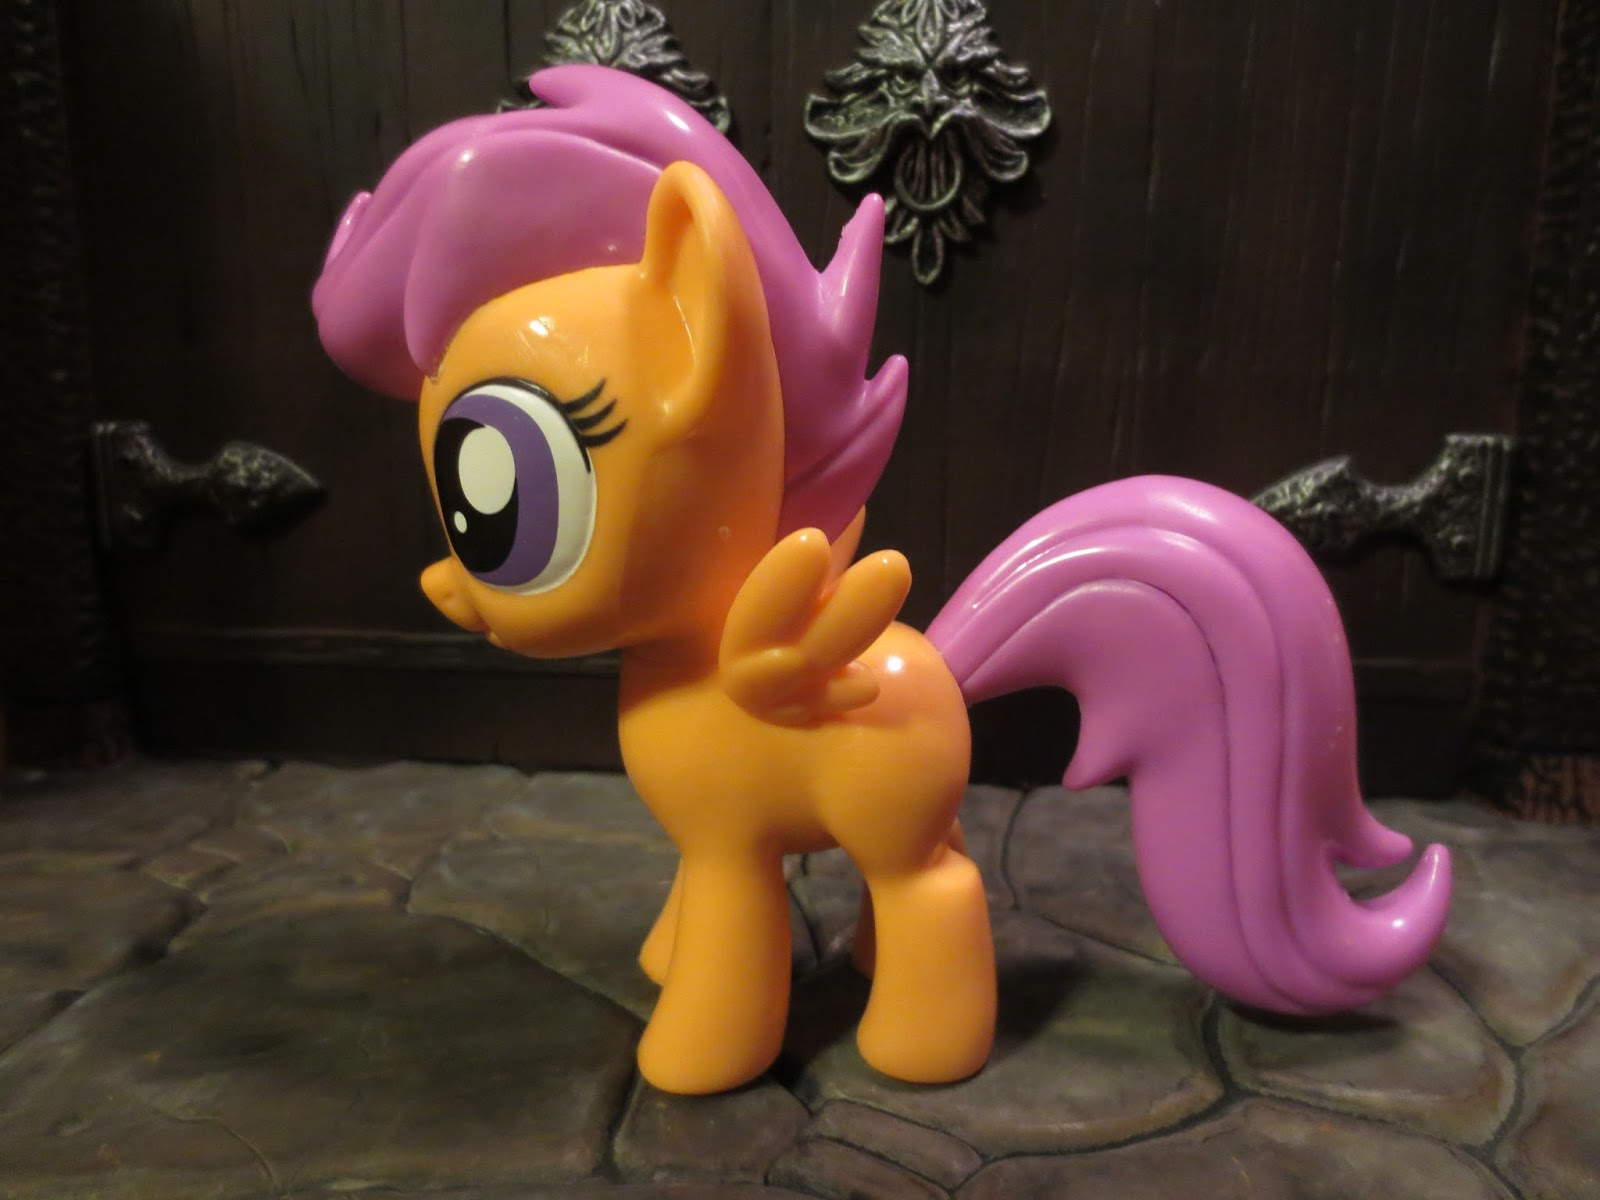 Action Figure Barbecue Action Figure Review Scootaloo From My Little Pony Vinyl Collectibles By Funko A collection of artwork of scootaloo. action figure barbecue